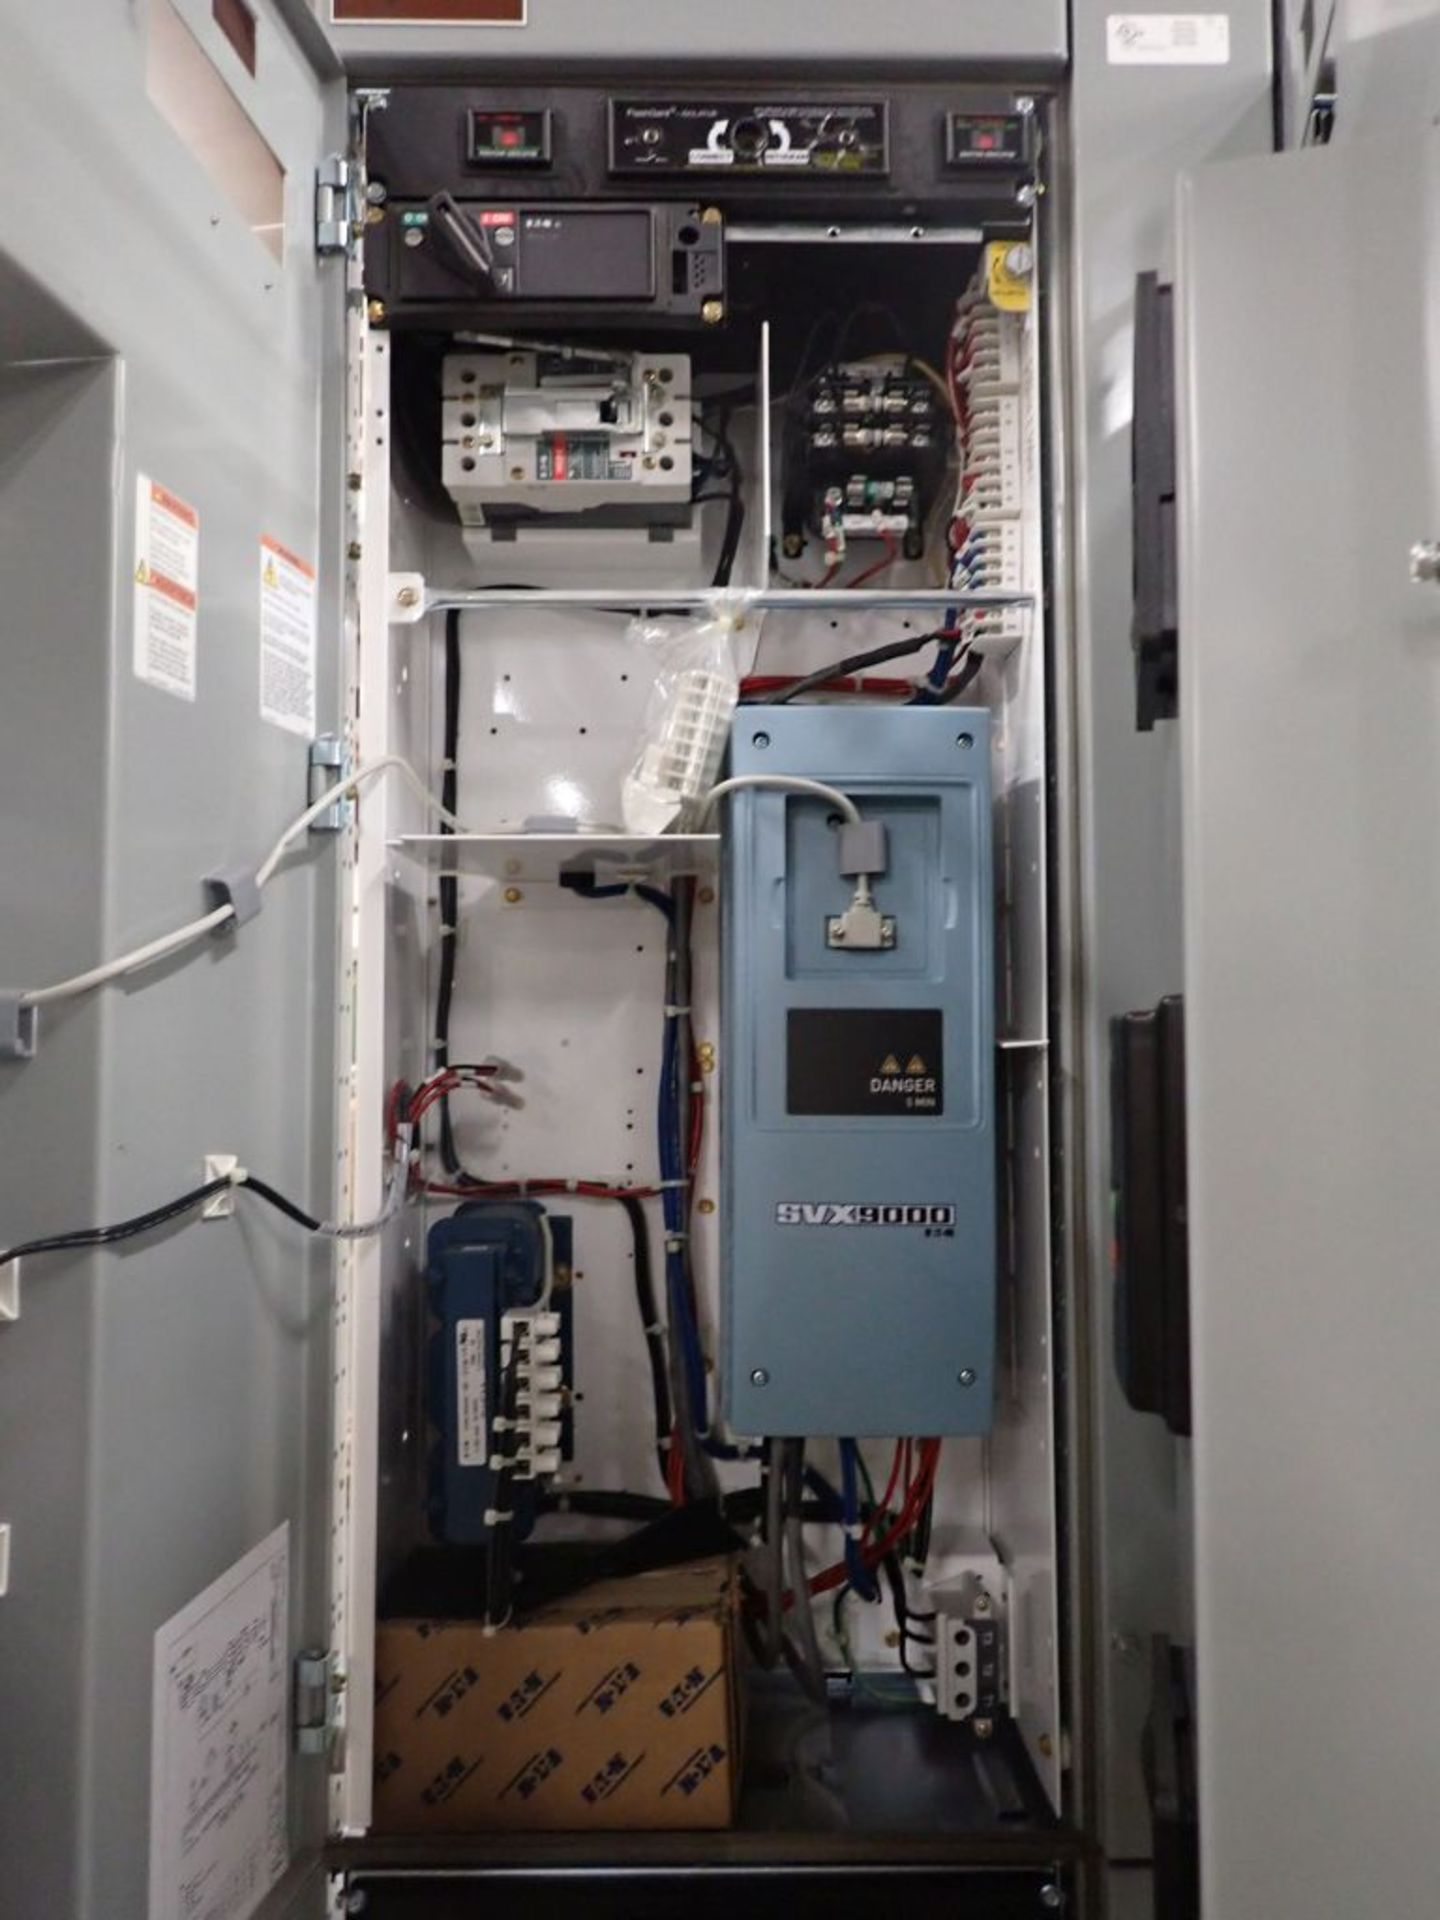 Eaton Freedom 2100 Series Motor Control Center   (4) SVX900-30A, with Eaton AF Drives, SVX9000, - Image 20 of 60